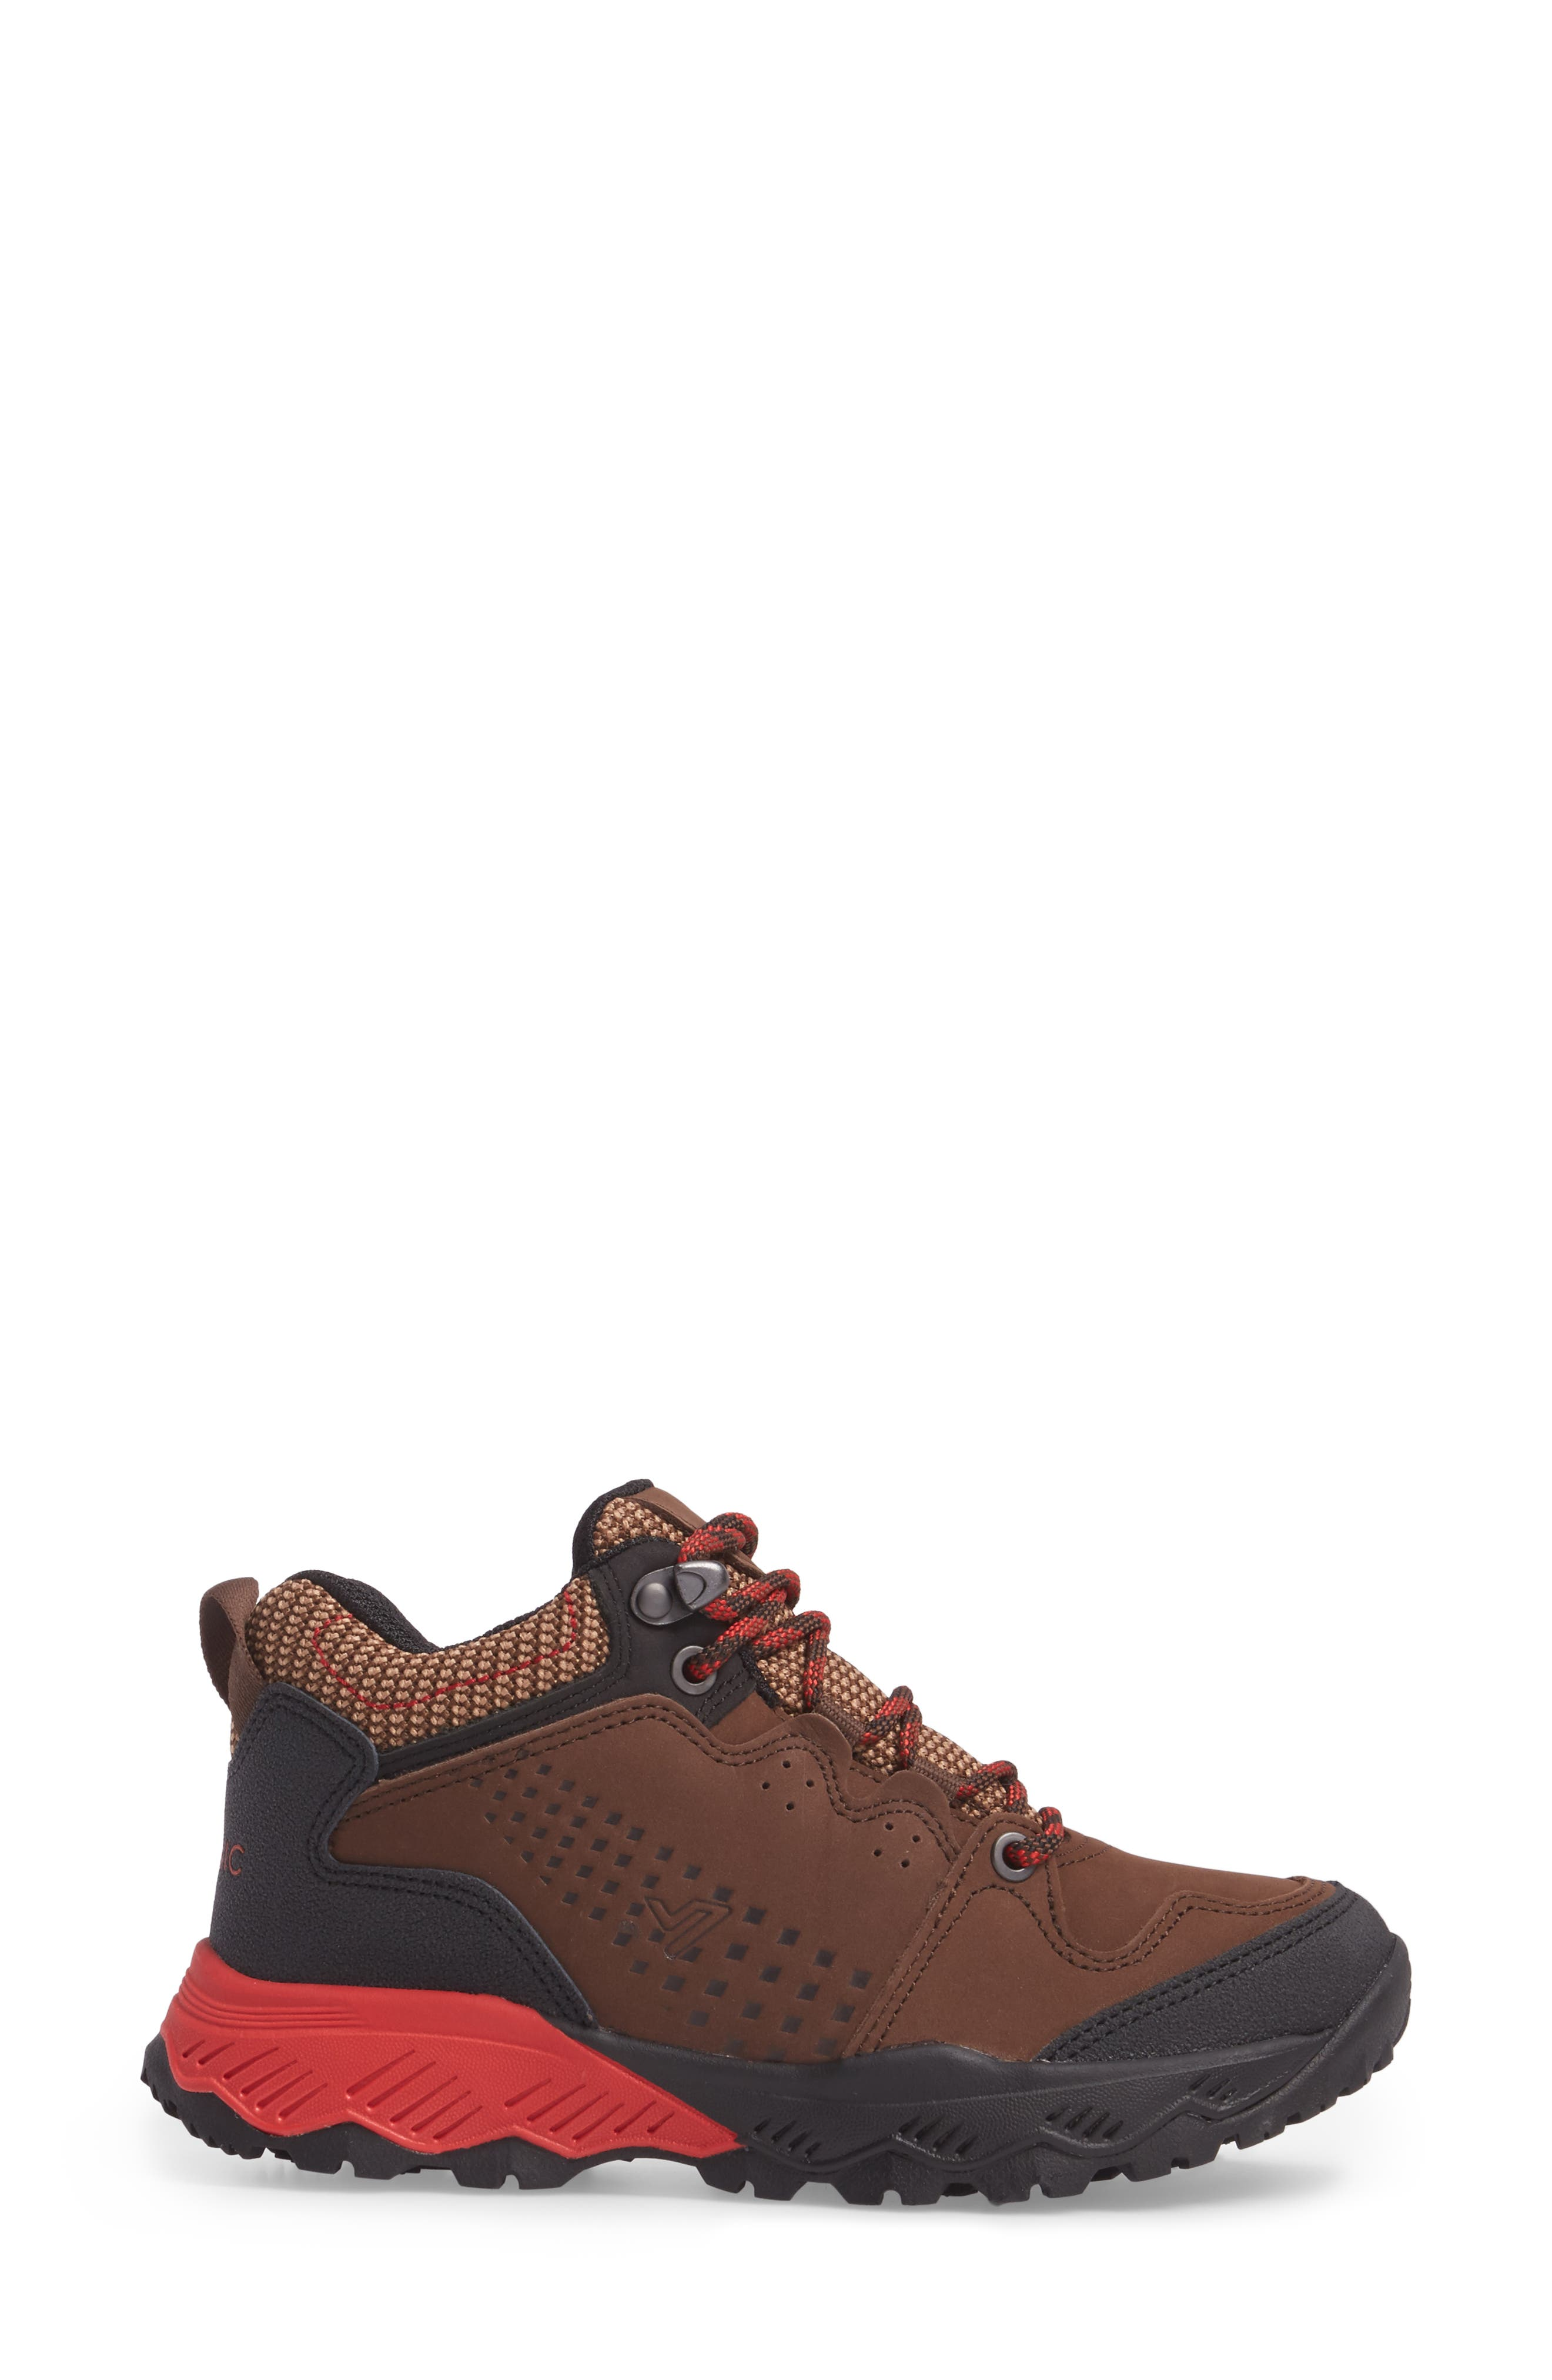 Everett Hiking Shoe,                             Alternate thumbnail 3, color,                             Brown / Red Leather